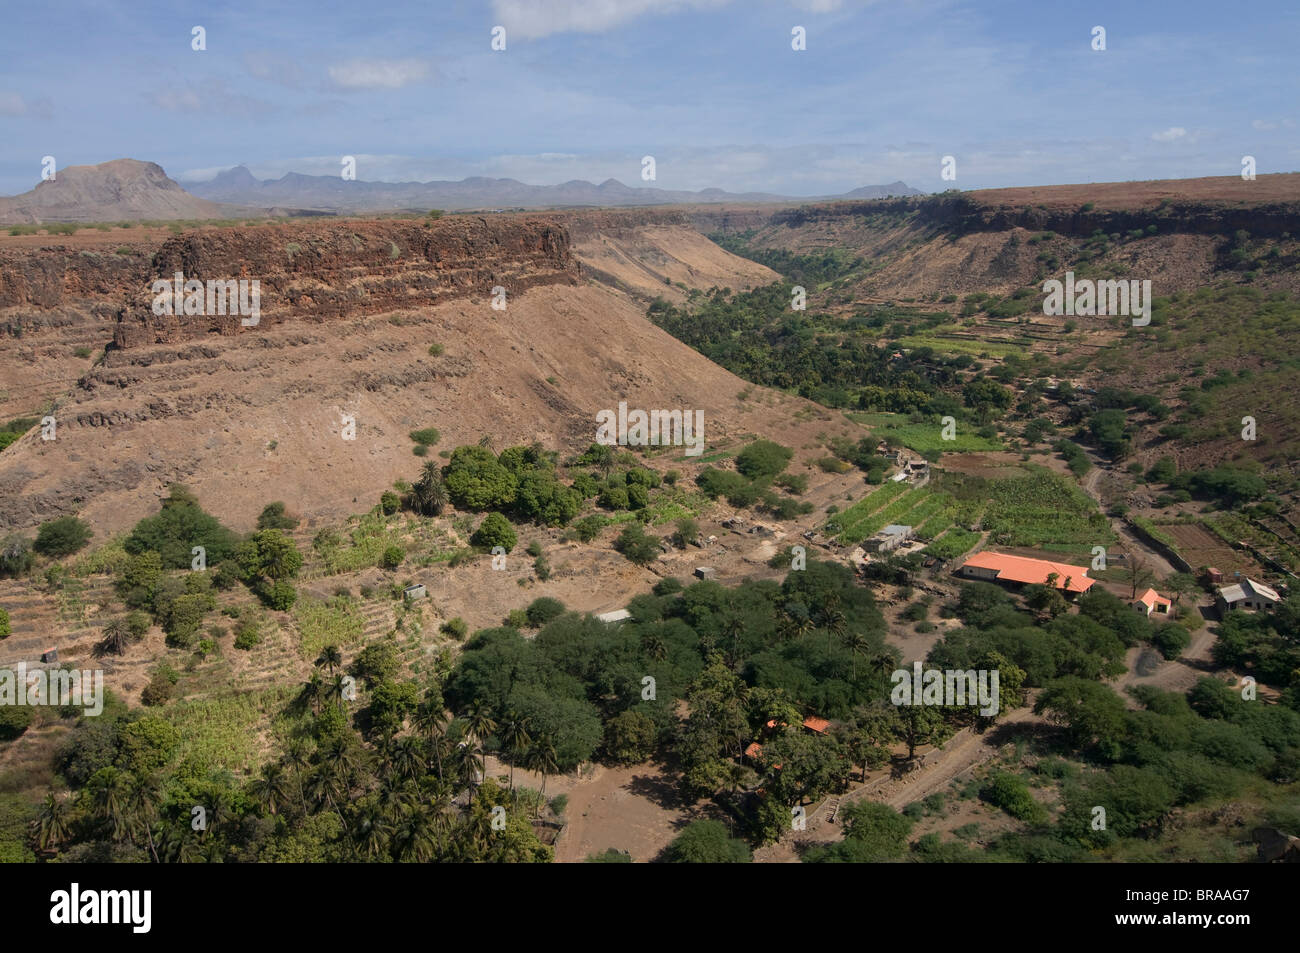 View through valley, Ciudad Velha (Cidade Velha), Santiago, Cape Verde Islands, Africa - Stock Image